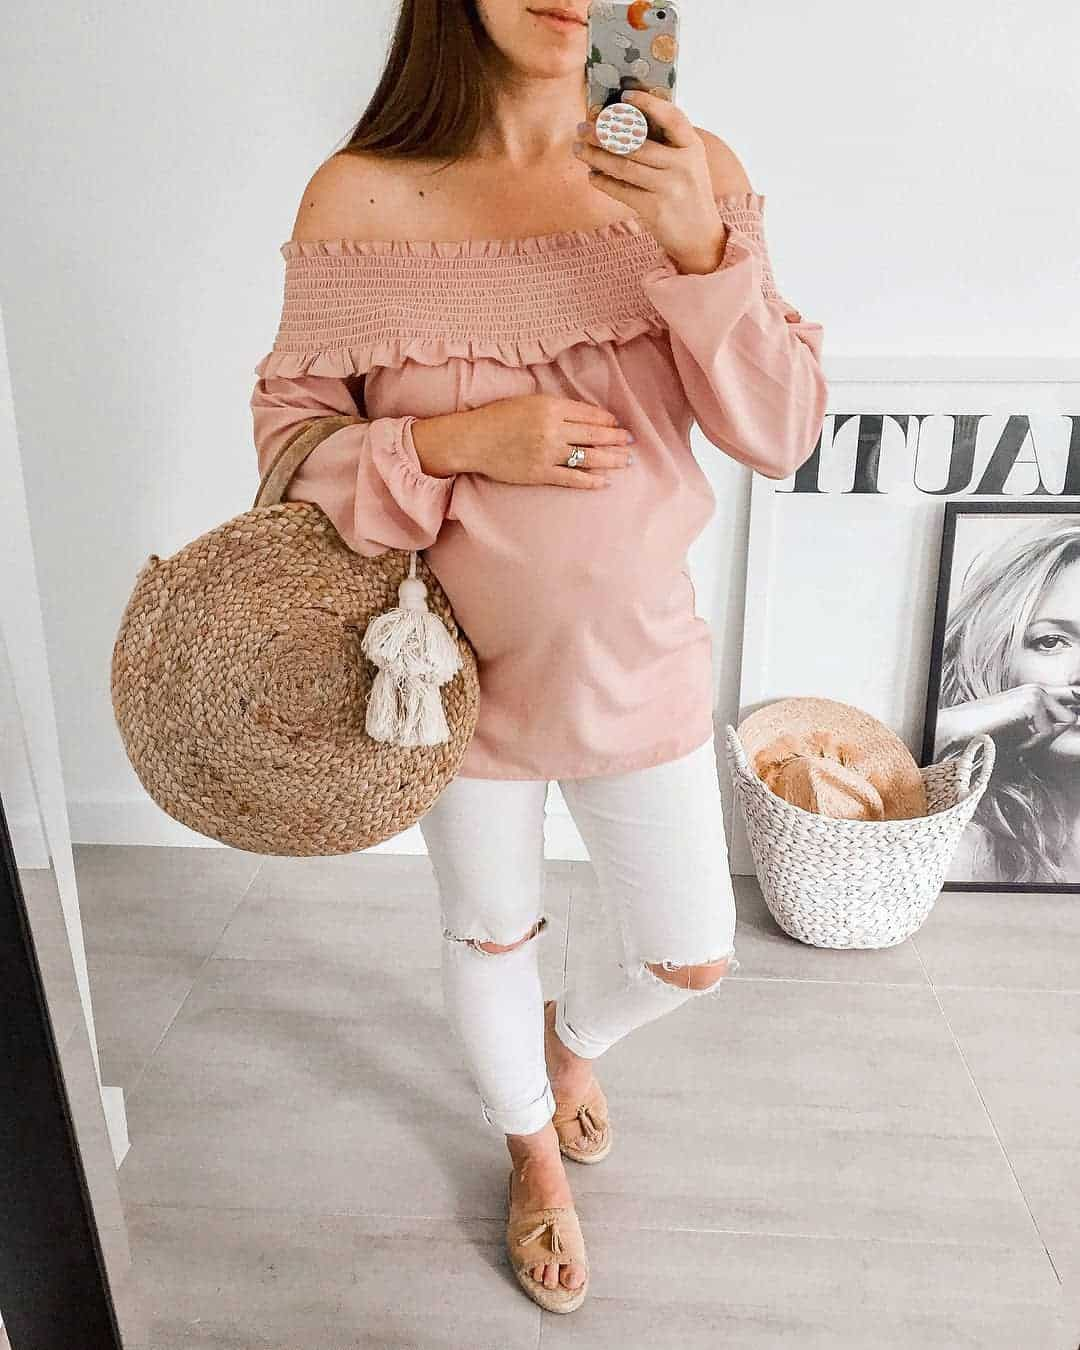 What to wear to a gender reveal party?